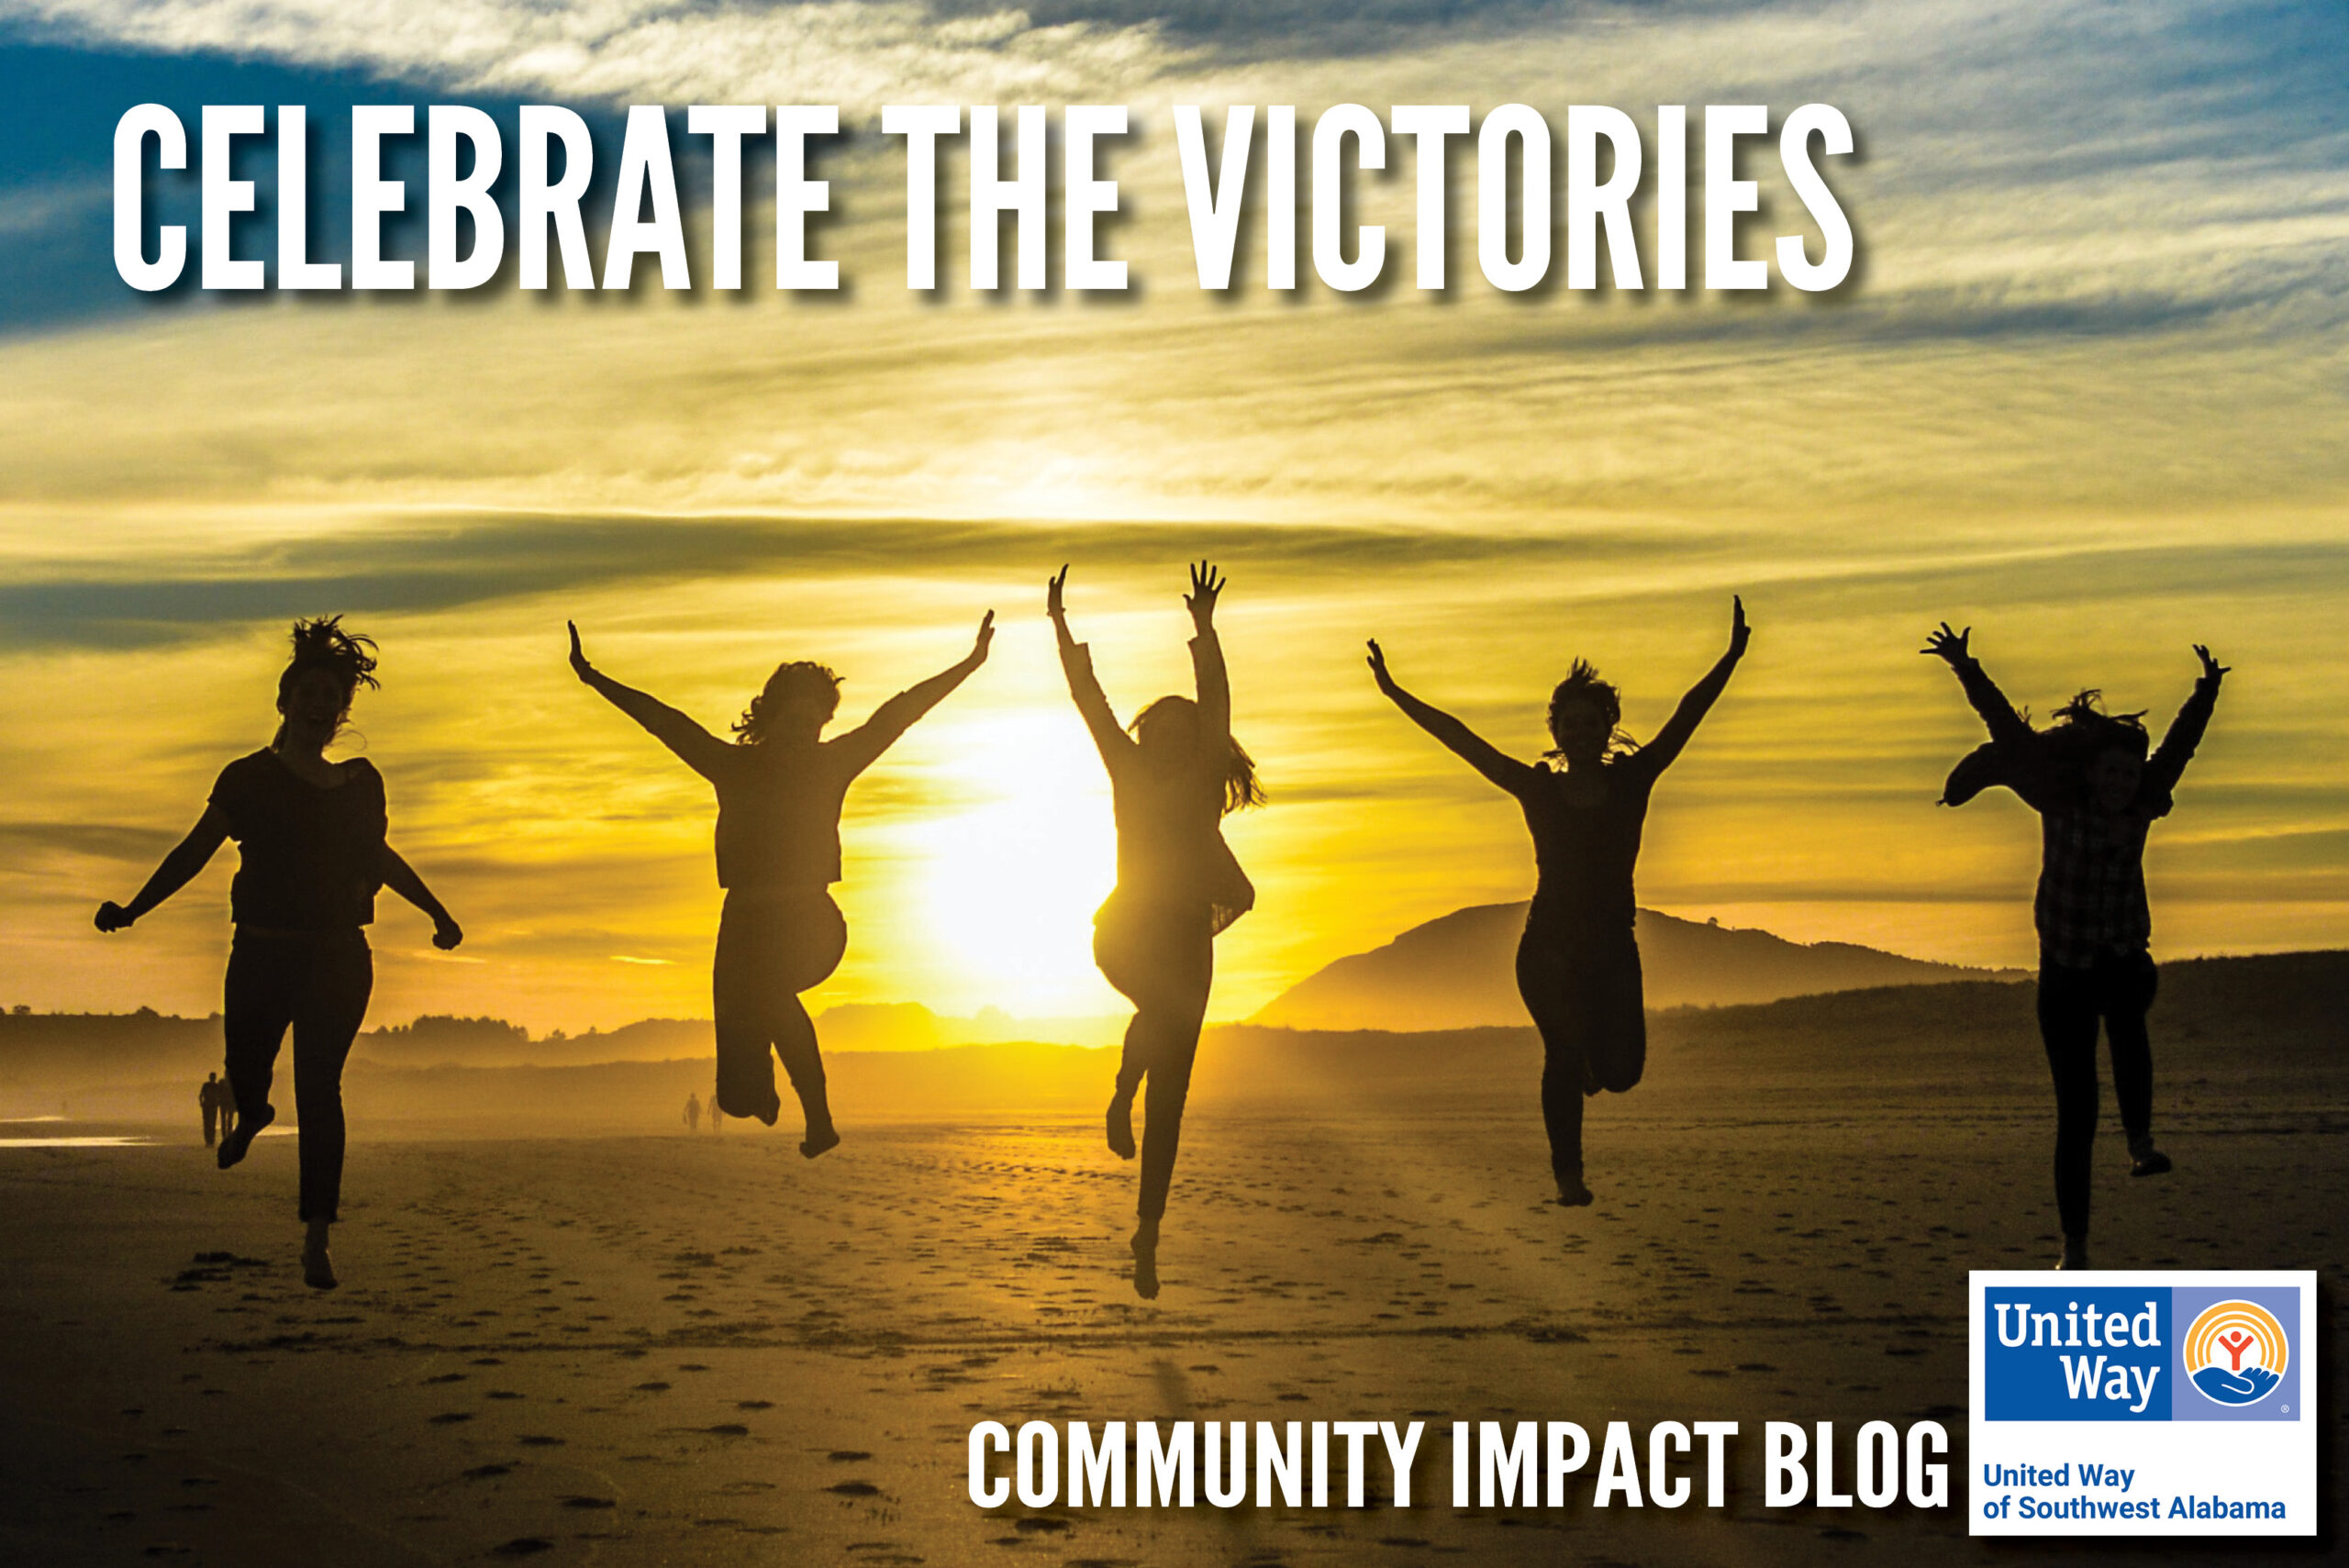 Community Impact October Blog: Celebrate the Victories